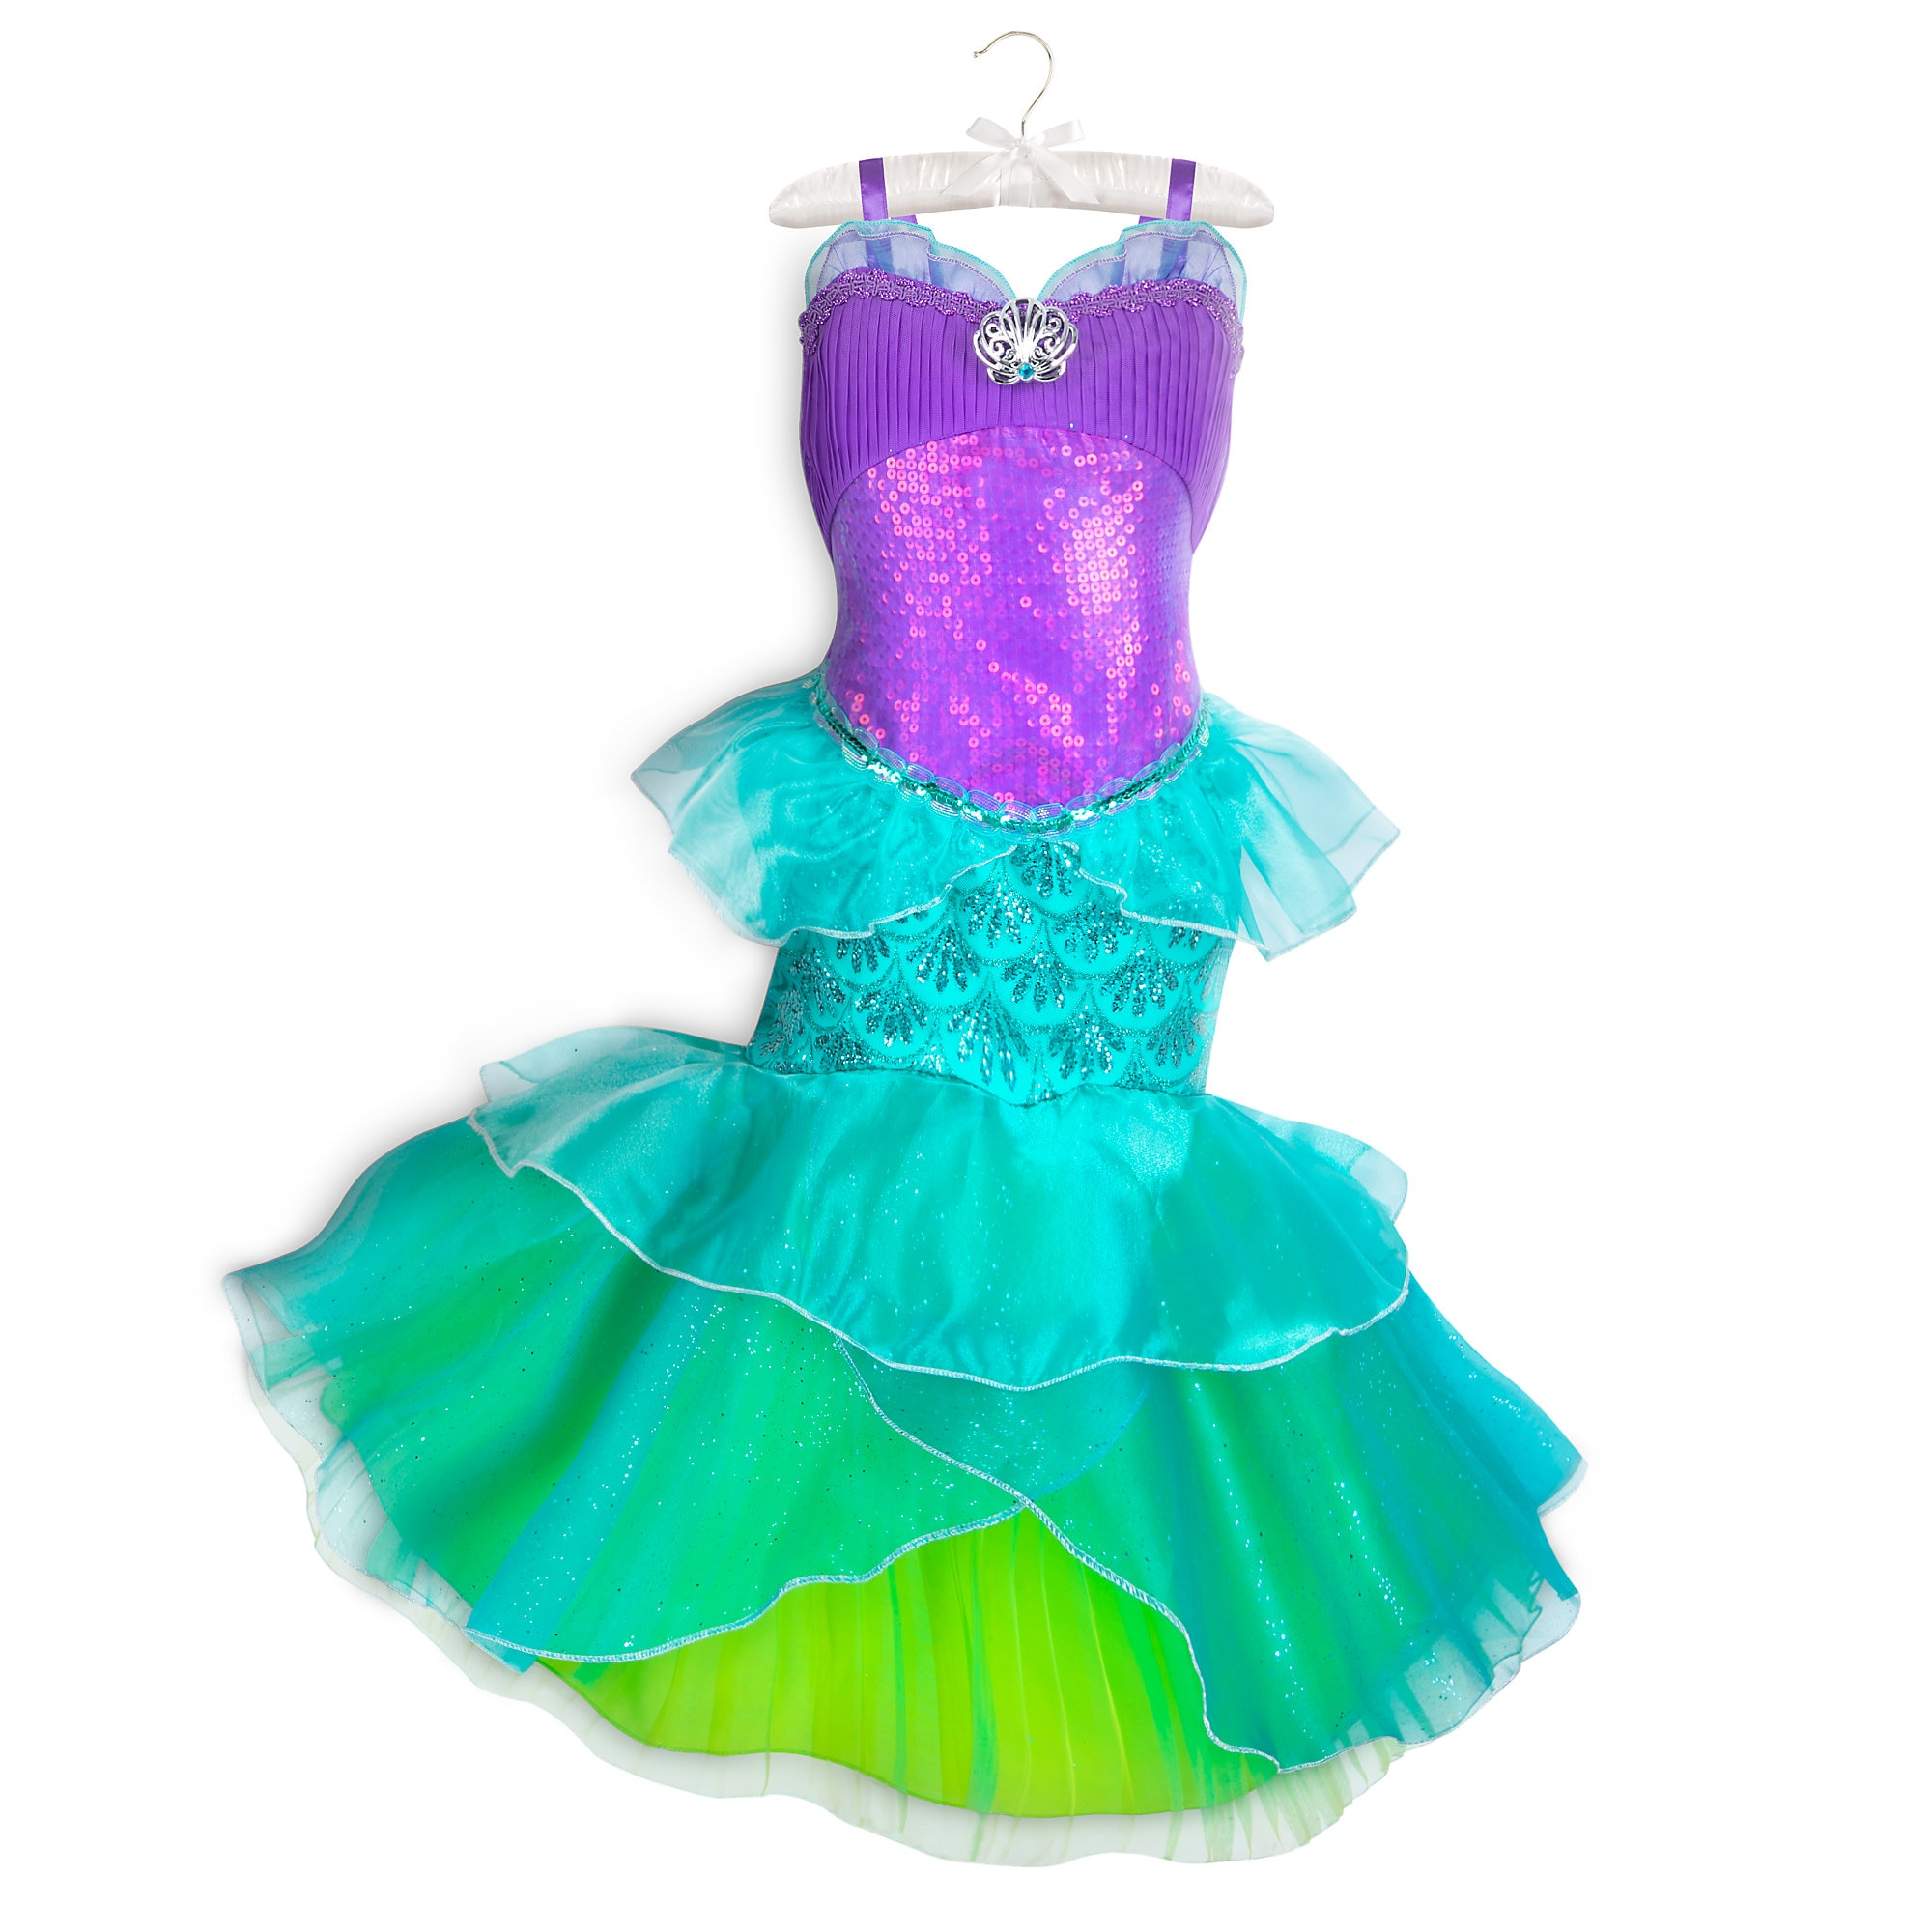 Ariel Costume for Kids   The Little Mermaid   shopDisney Product Image of Ariel Costume for Kids   The Little Mermaid   1